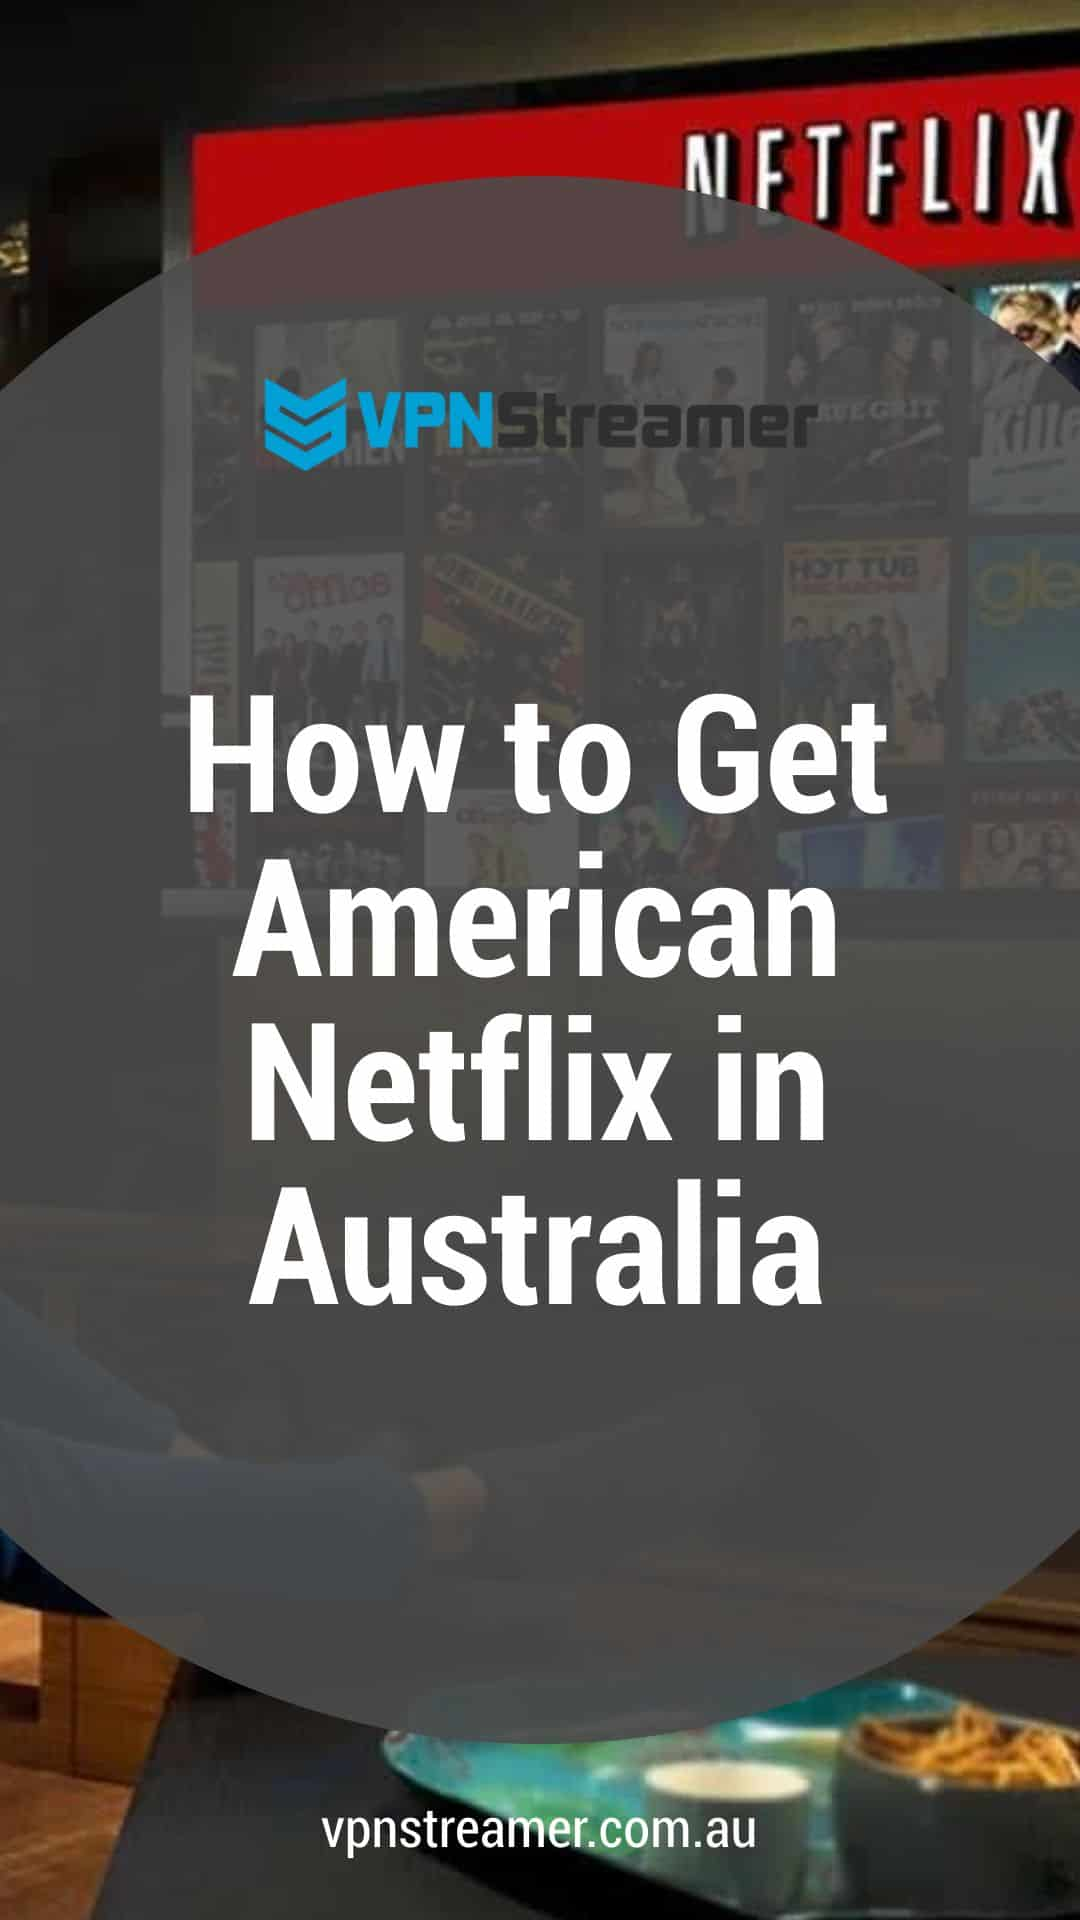 How to Get American Netflix in Australia